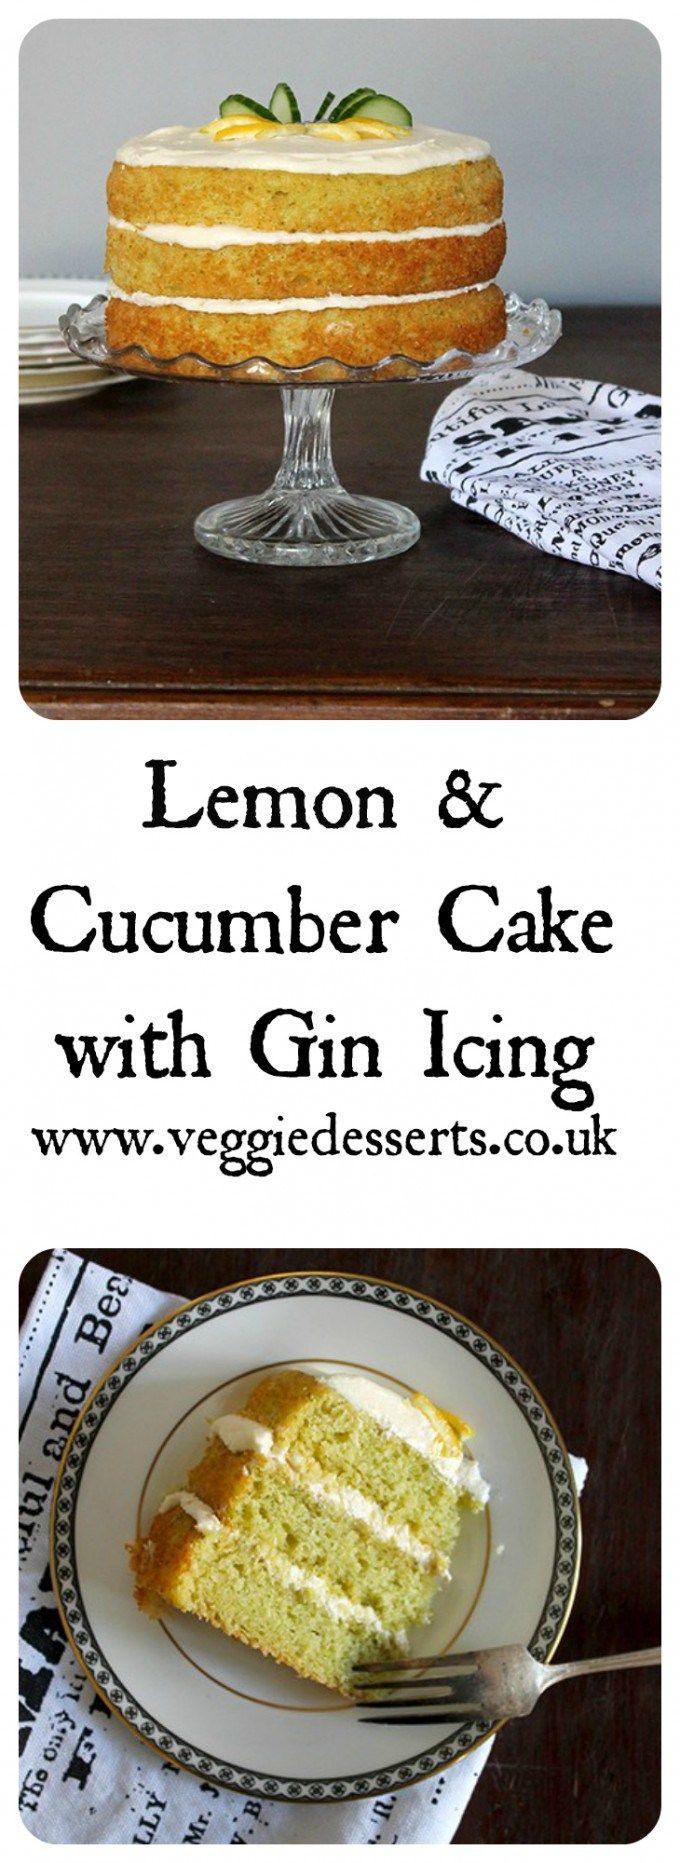 Lemon and Cucumber Cake with Gin Icing | Veggie Desserts Blog by Kate Hackworthy  This delicate green cucumber cake tastes like a lemon sponge with a subtle, refreshing flavour from the cucumber. It's a summery cake and I've topped it with a gin icing. Th